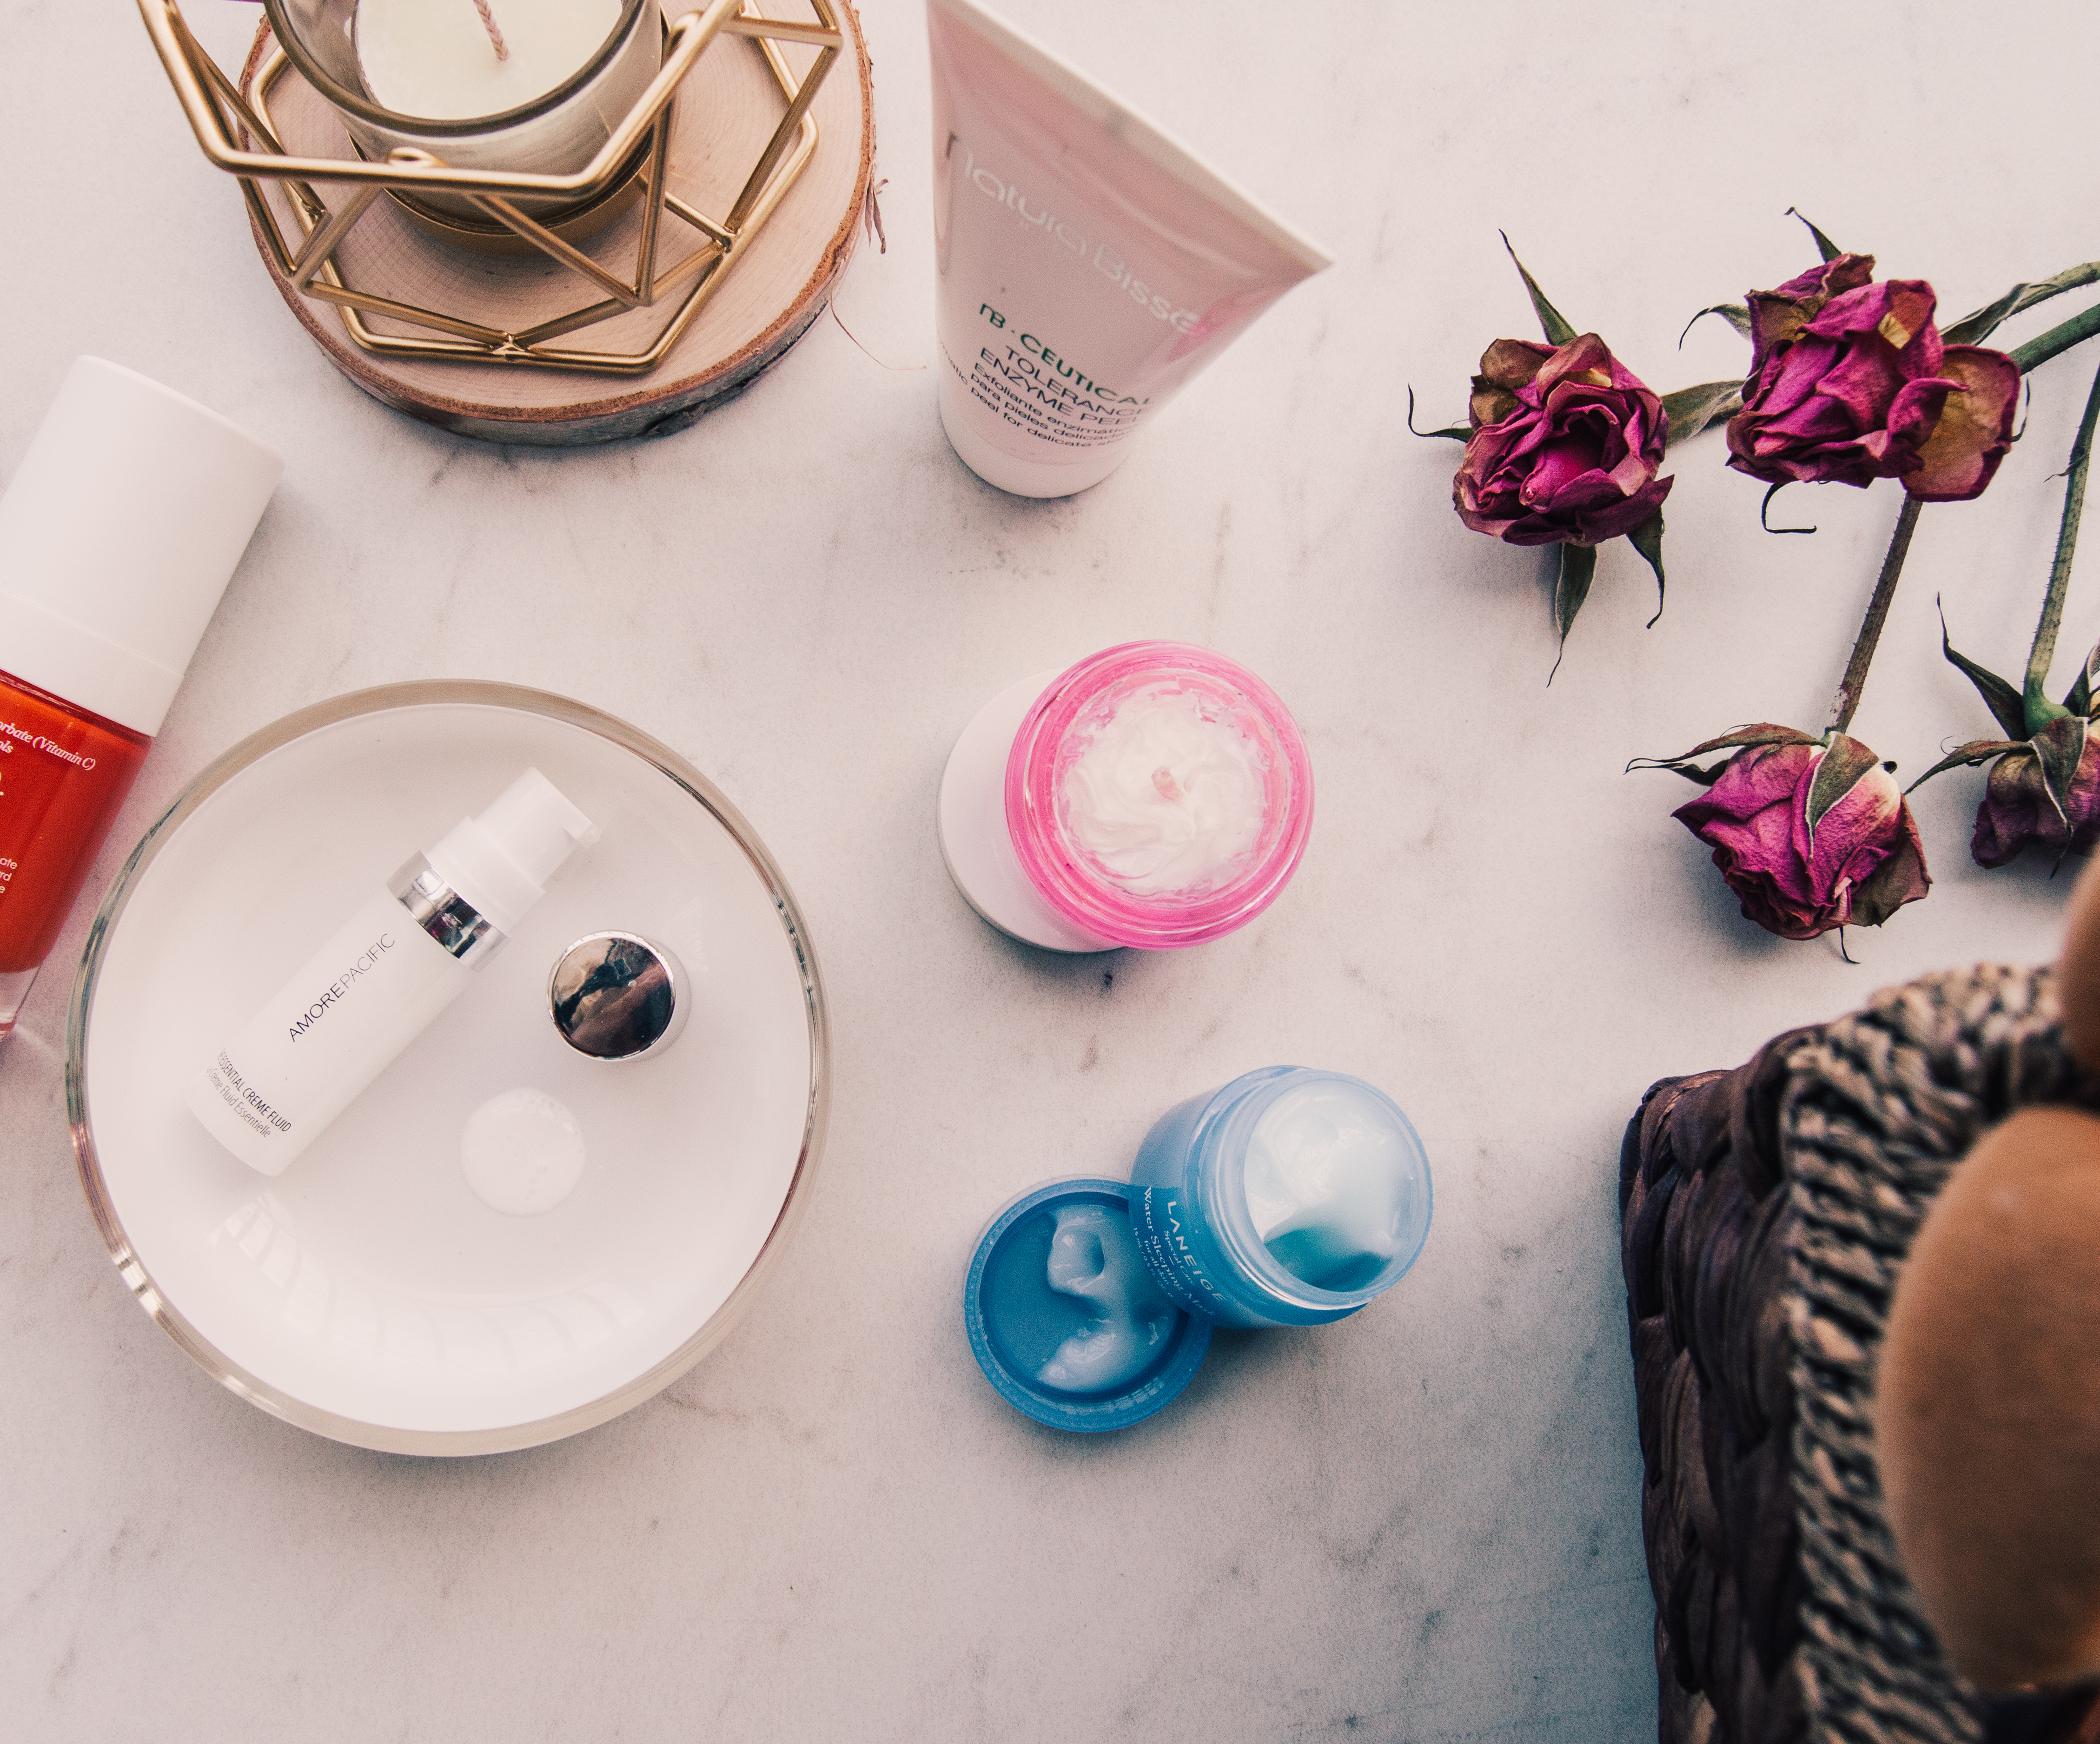 5 Hydrating Skincare Products